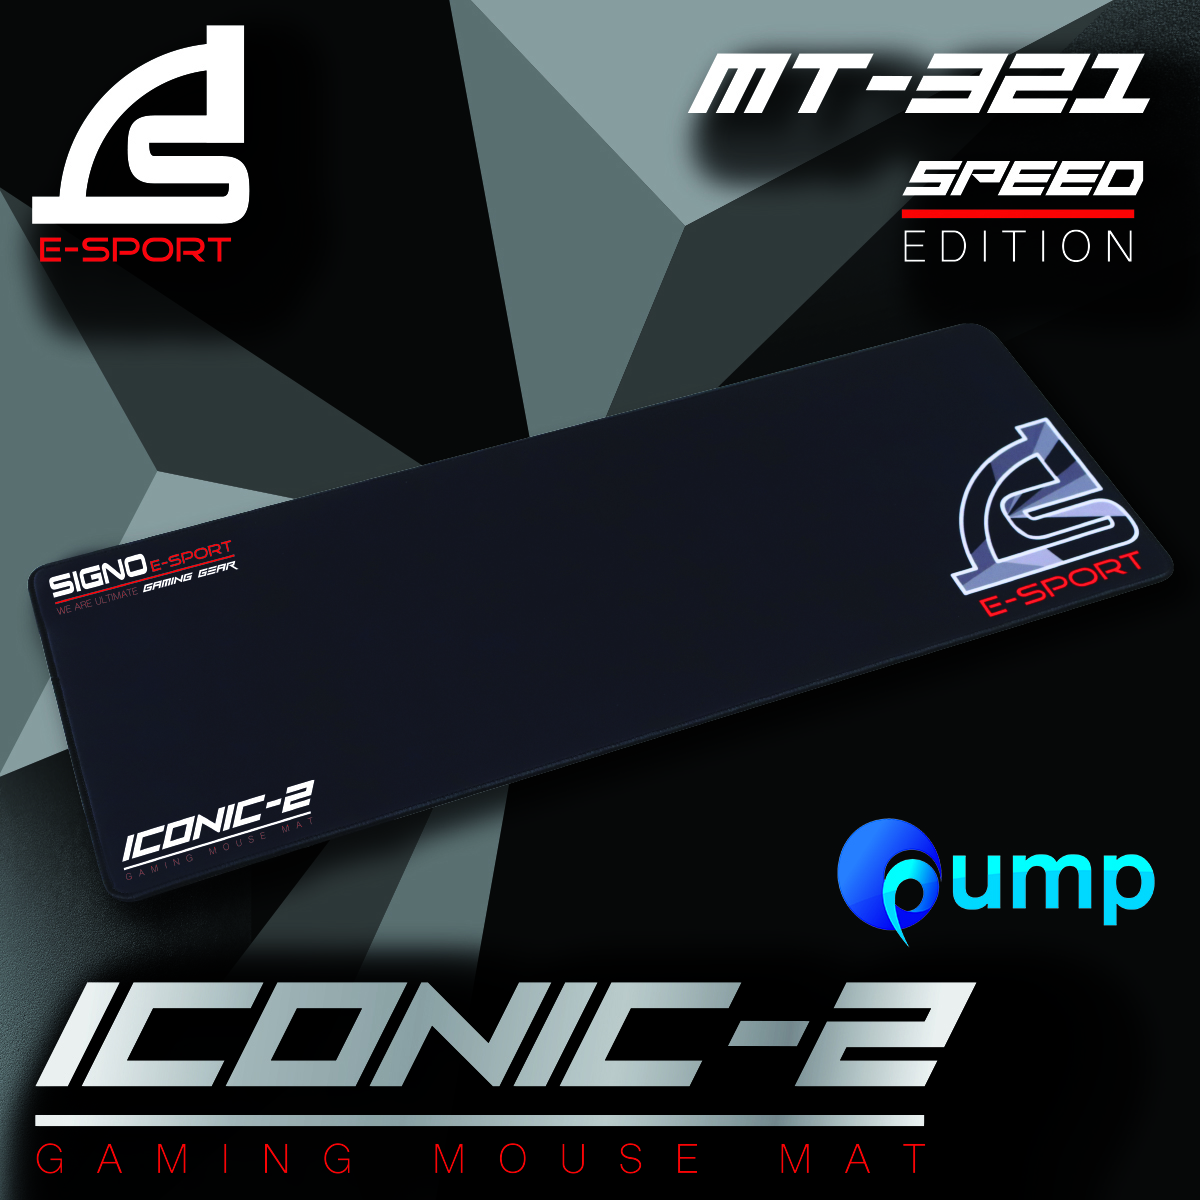 Signo E-Sport MT-321 ICONIC-2 Gaming Mouse Mat